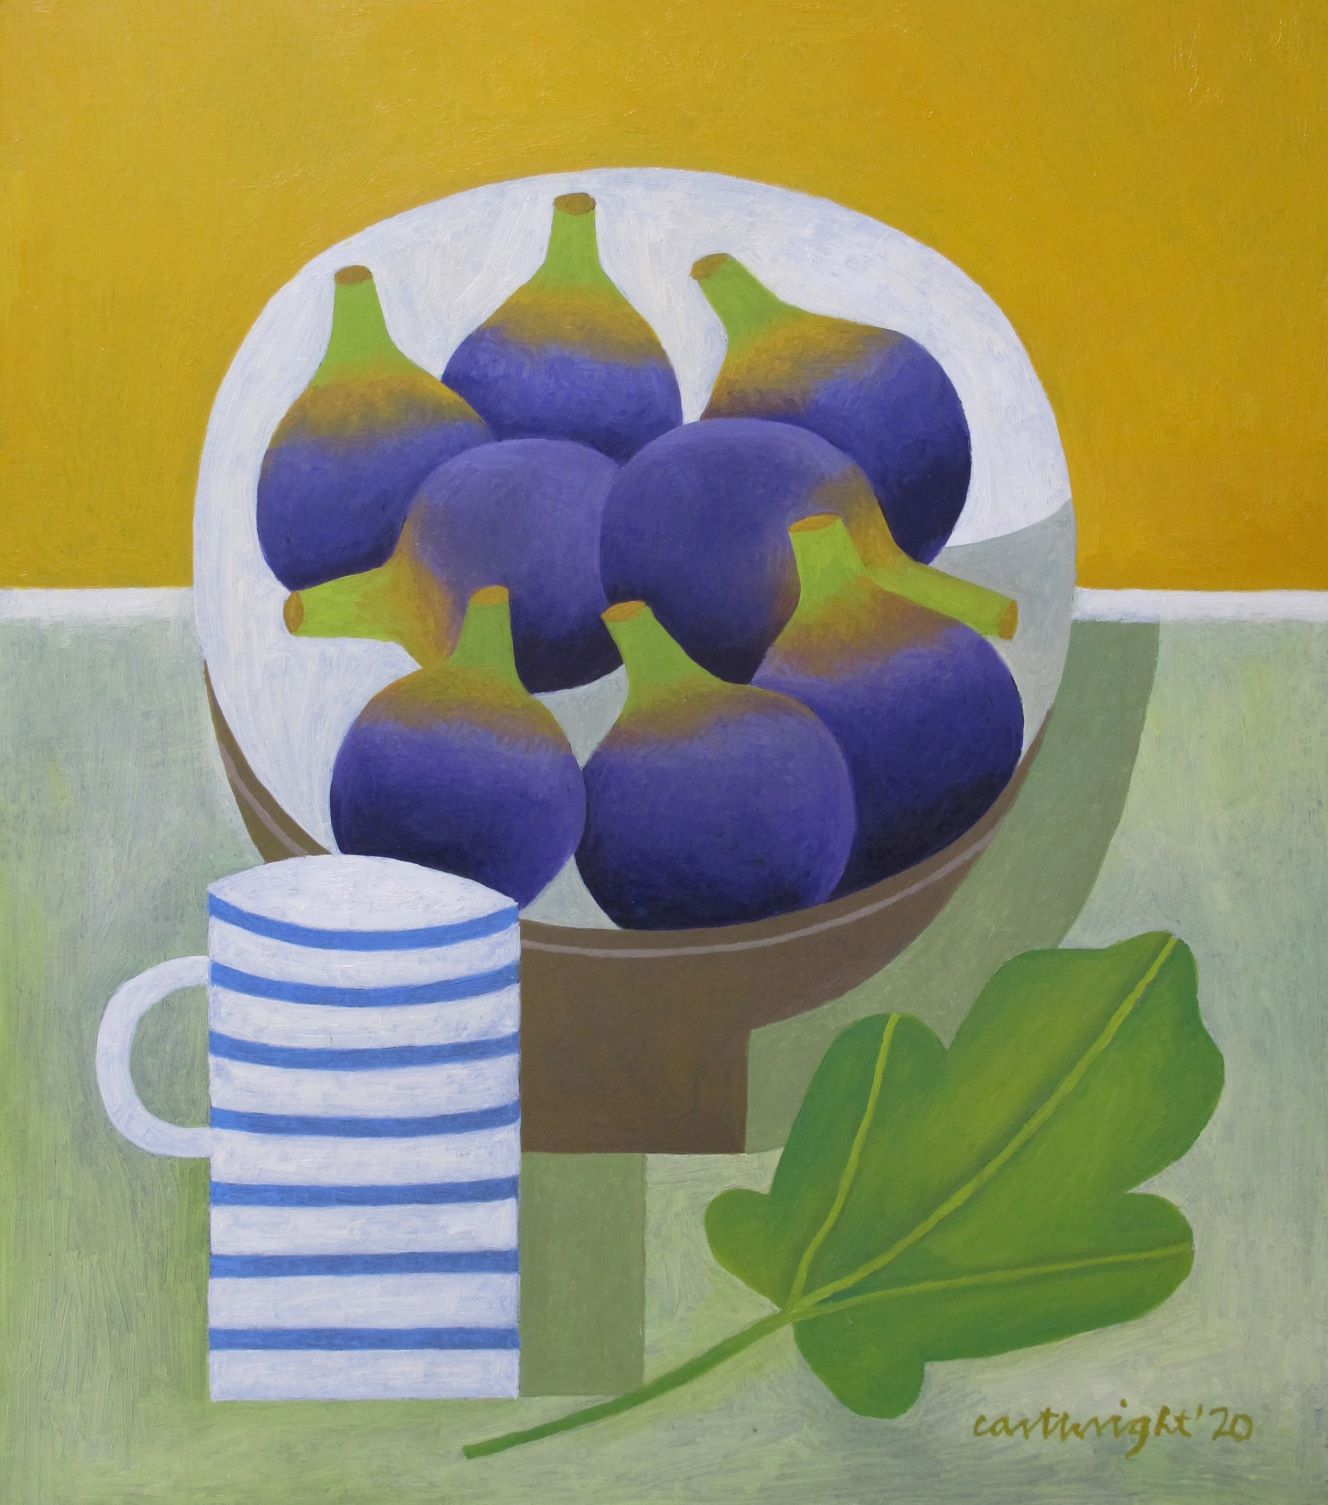 Figs in grey bowl with fig leaf and white /blue mug against yellow and grey background. Painted by Reg Cartwright 2020